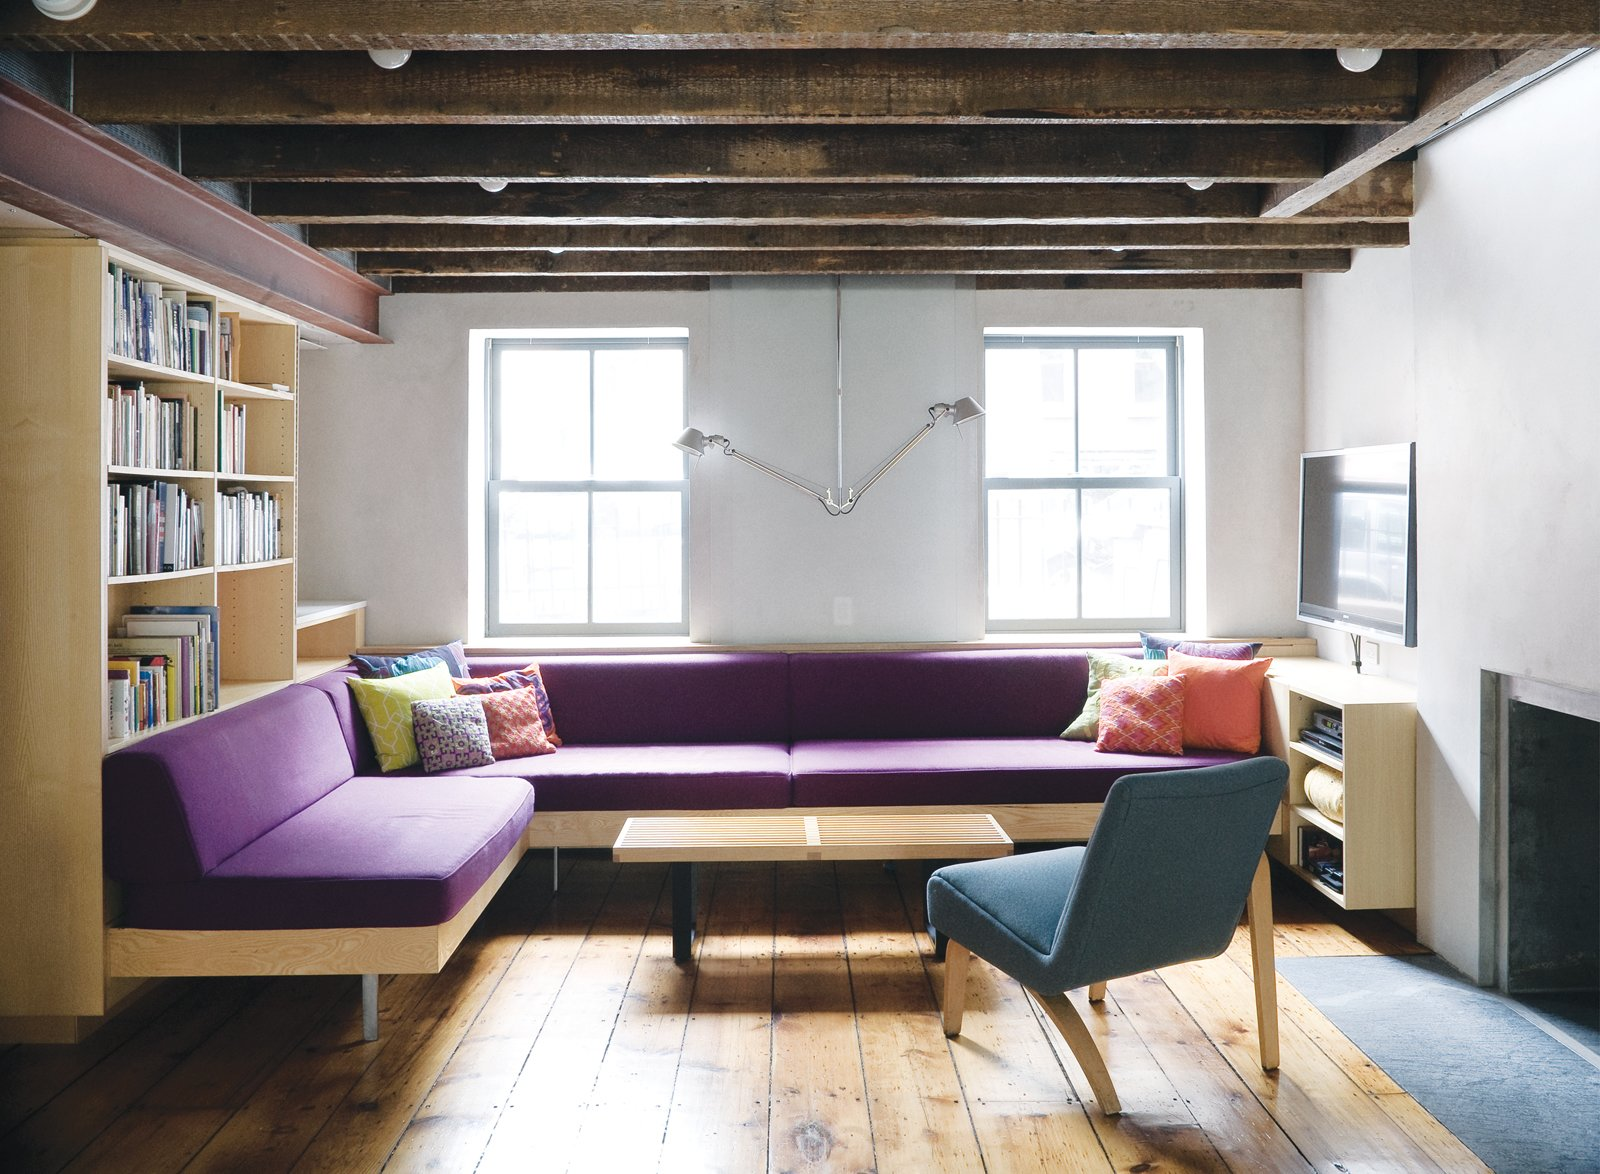 Facing the front facade on the English basement level, a sectional of Dixon's design punctuates the otherwise neutral hues with a stately purple. The lamp is a double-suspension Tolomeo from Artemide. The reupholstered Thonet chair lends balance to the room through its own asymmetry. Tagged: Living Room, Sectional, Medium Hardwood Floor, and Chair.  Photo 1 of 28 in Family Home Renovation in Brooklyn